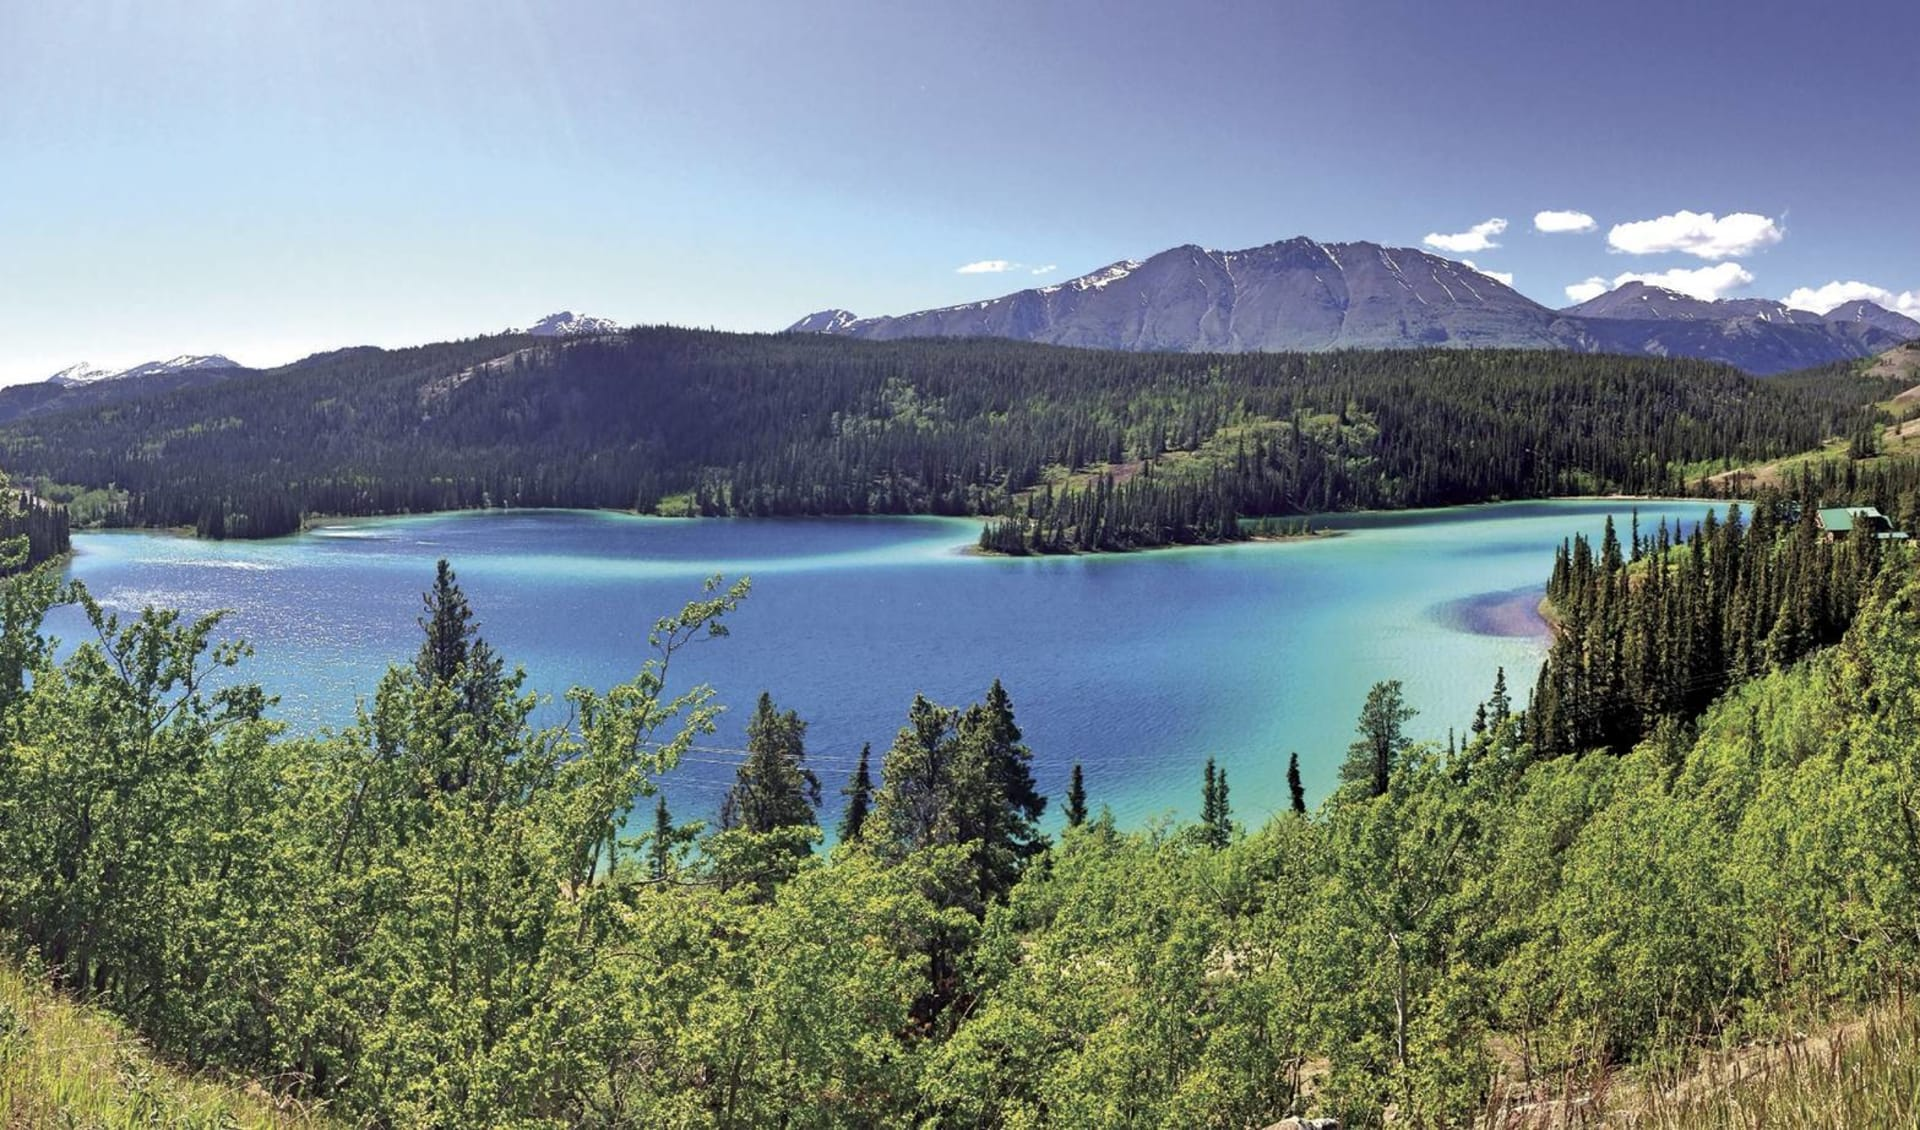 Discover Yukon & Northwest Territories ab Whitehorse: Kanada - Yukon - Emerald Lake